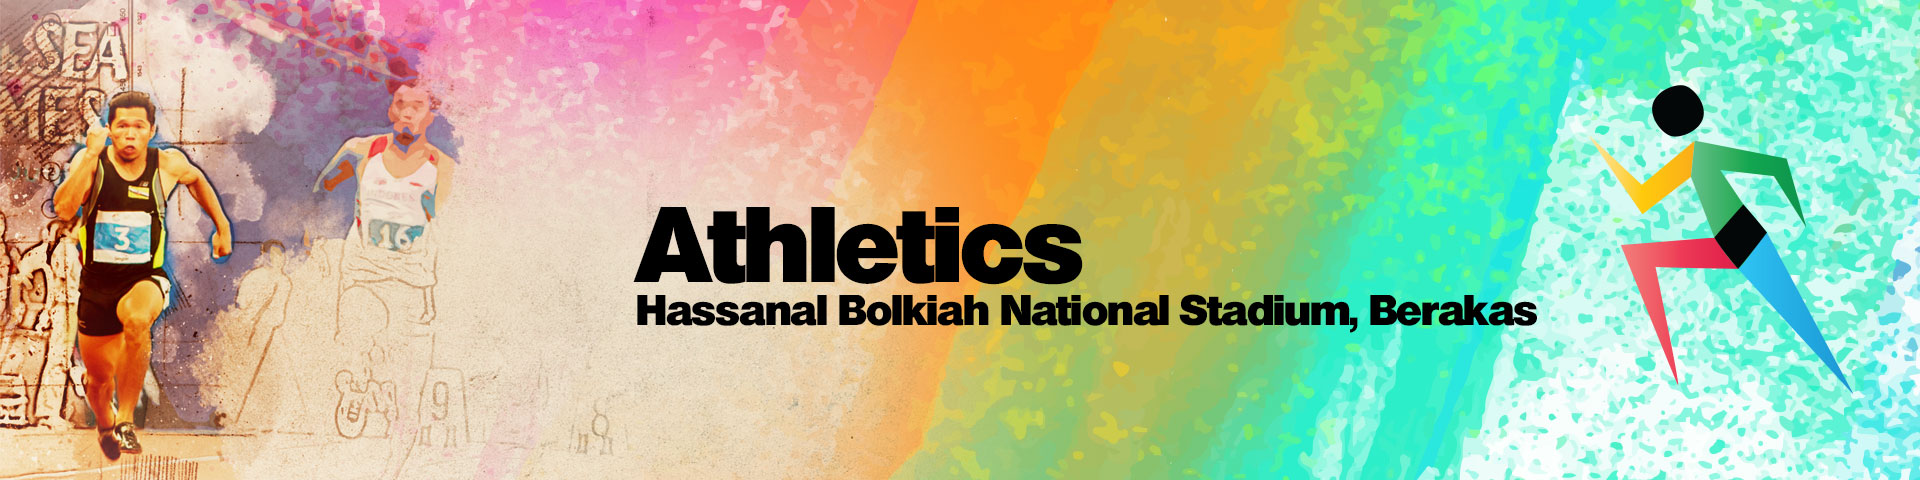 http://bimpnt-eaga-kkbs-poc.egc.gov.bn/PublishingImages/banner/athletics.jpg